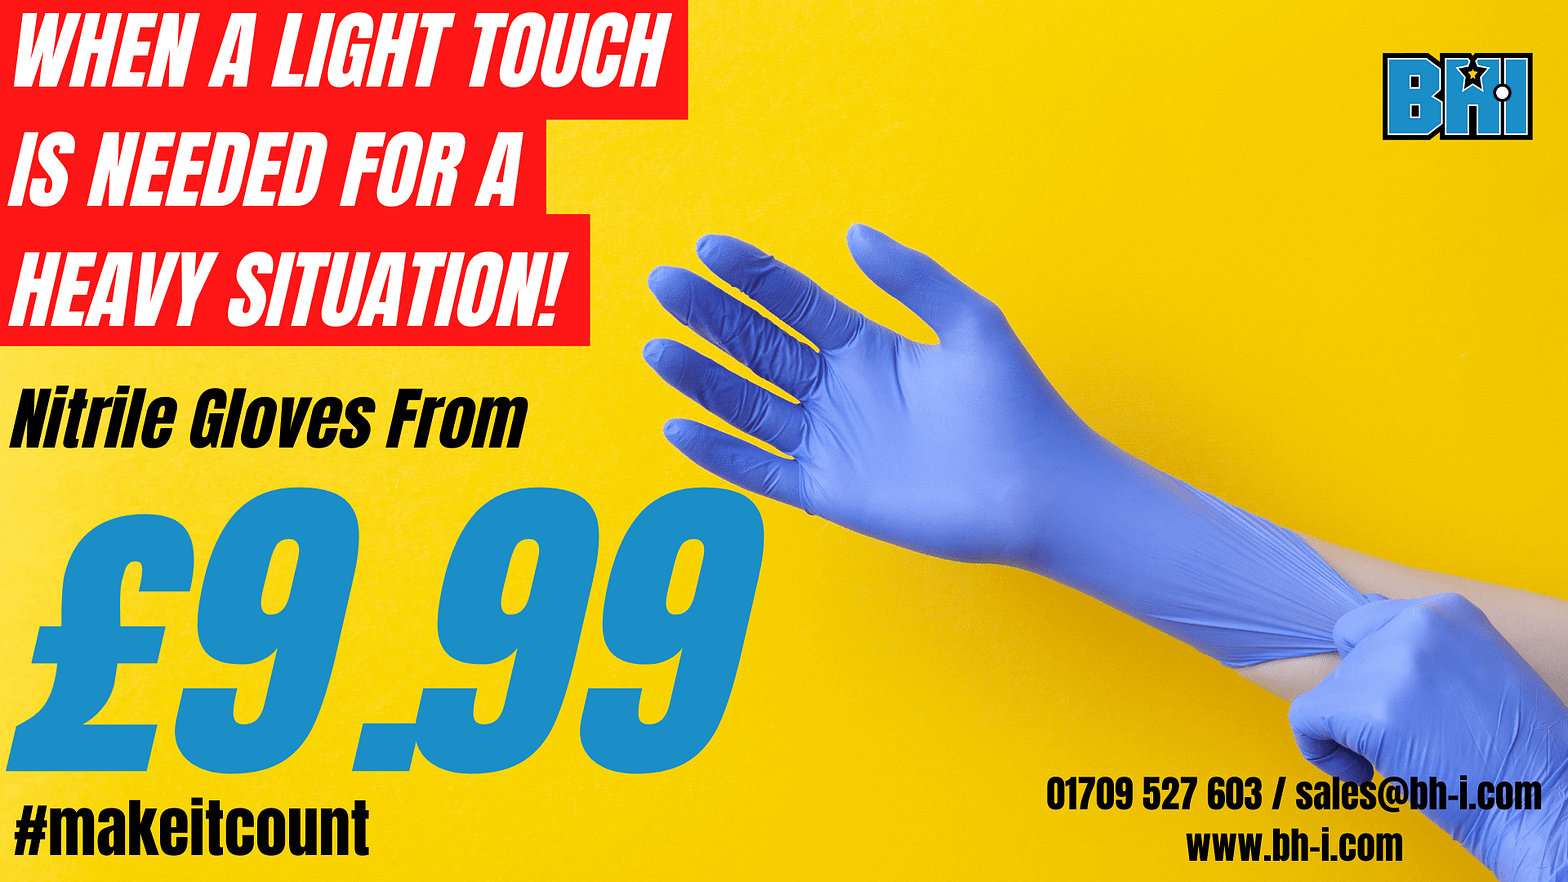 BHI Supplies ltd - Nitrile glove offer 3